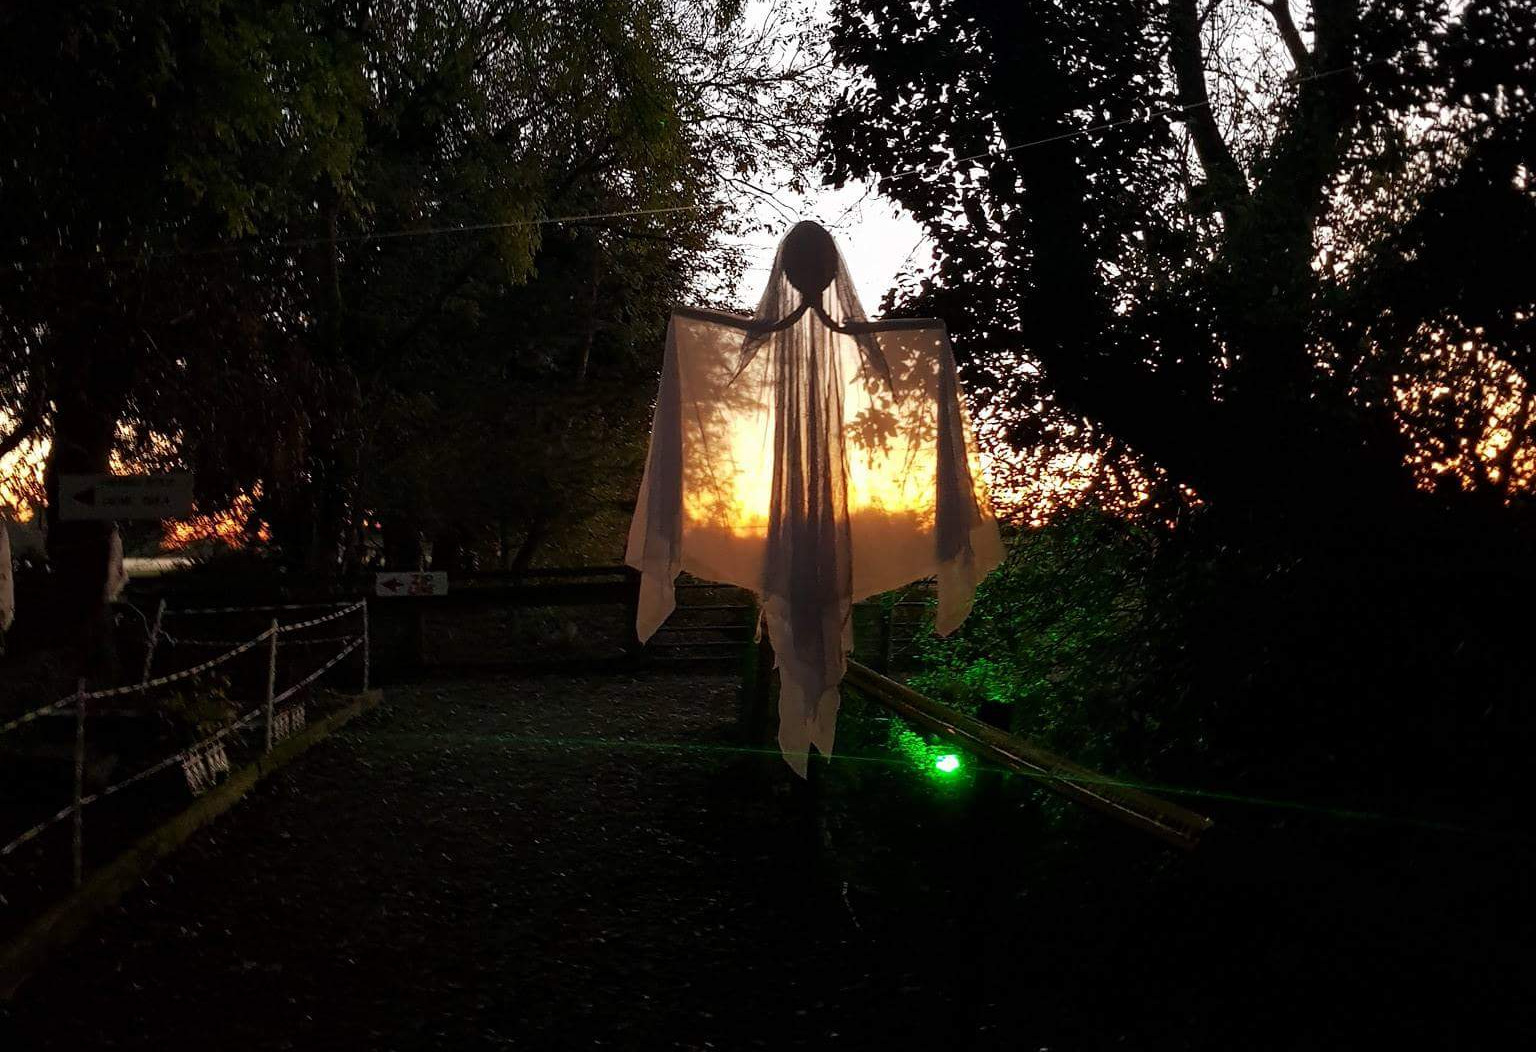 Things to do in County Kildare, Ireland - Halloween Festival |  Clonfert Pet Farm - YourDaysOut - Photo 2